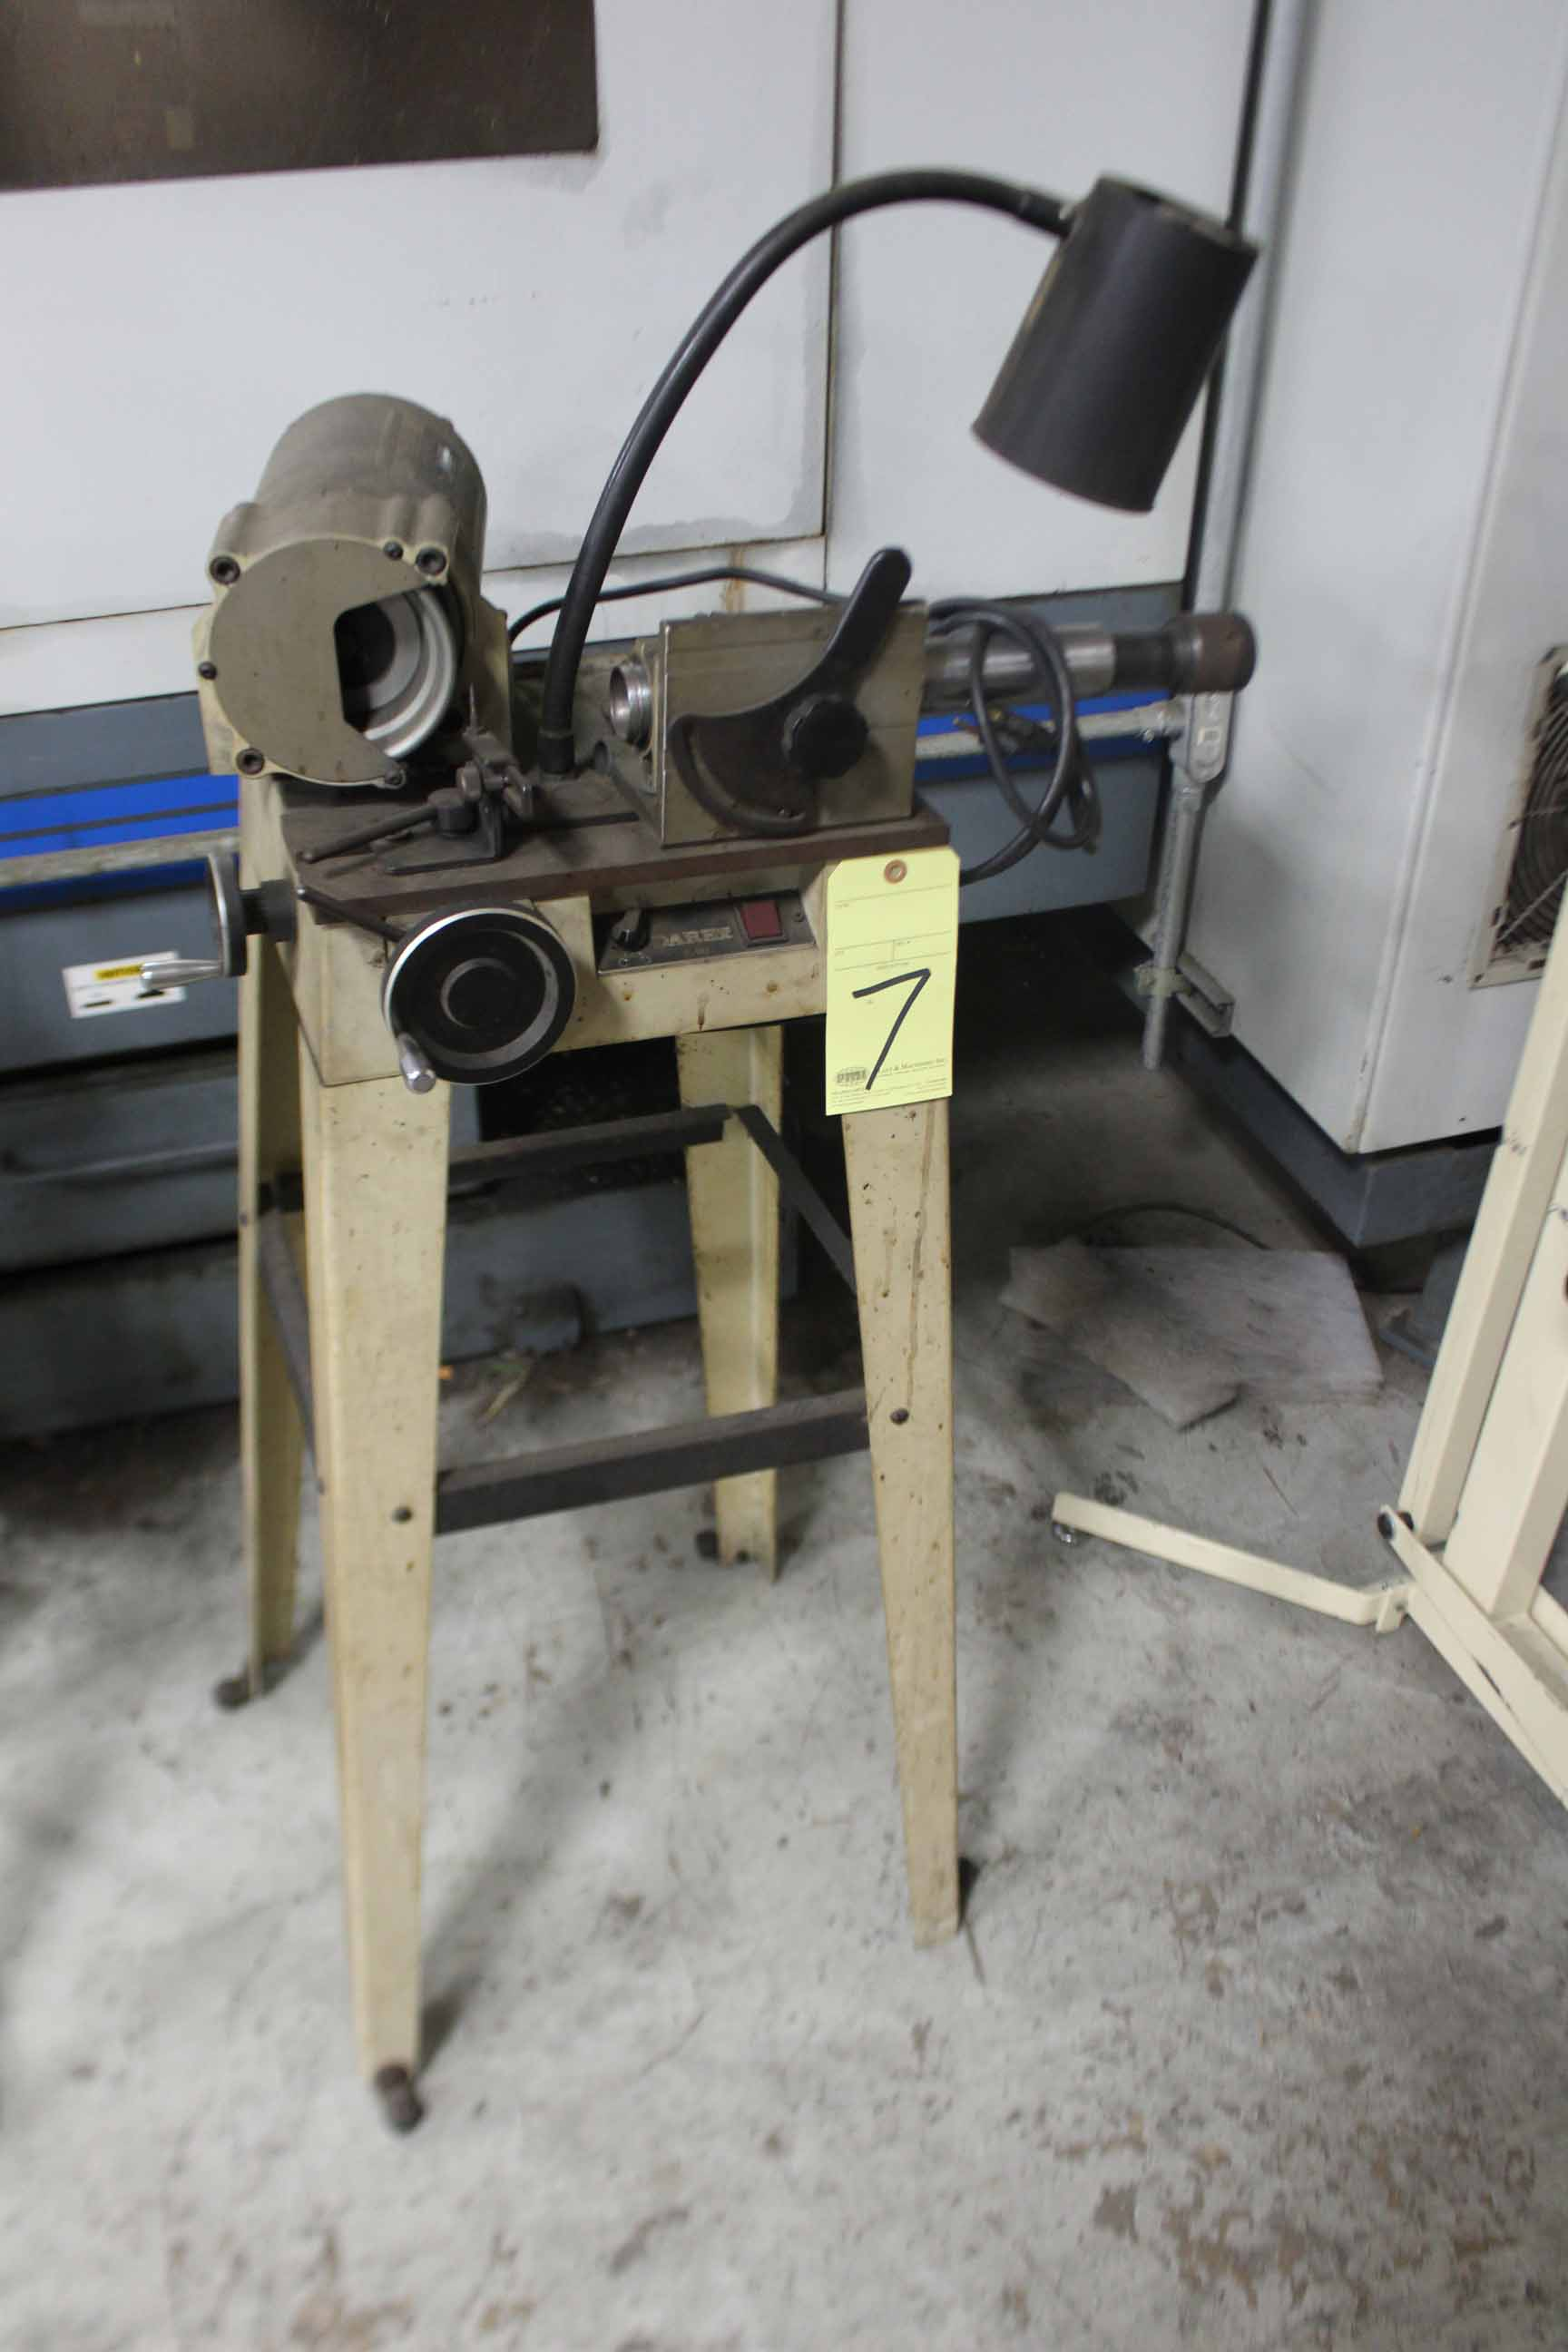 Lot 7 - DRILL SHARPENER, DAREX, 1/4 HP motor, S/N 93346